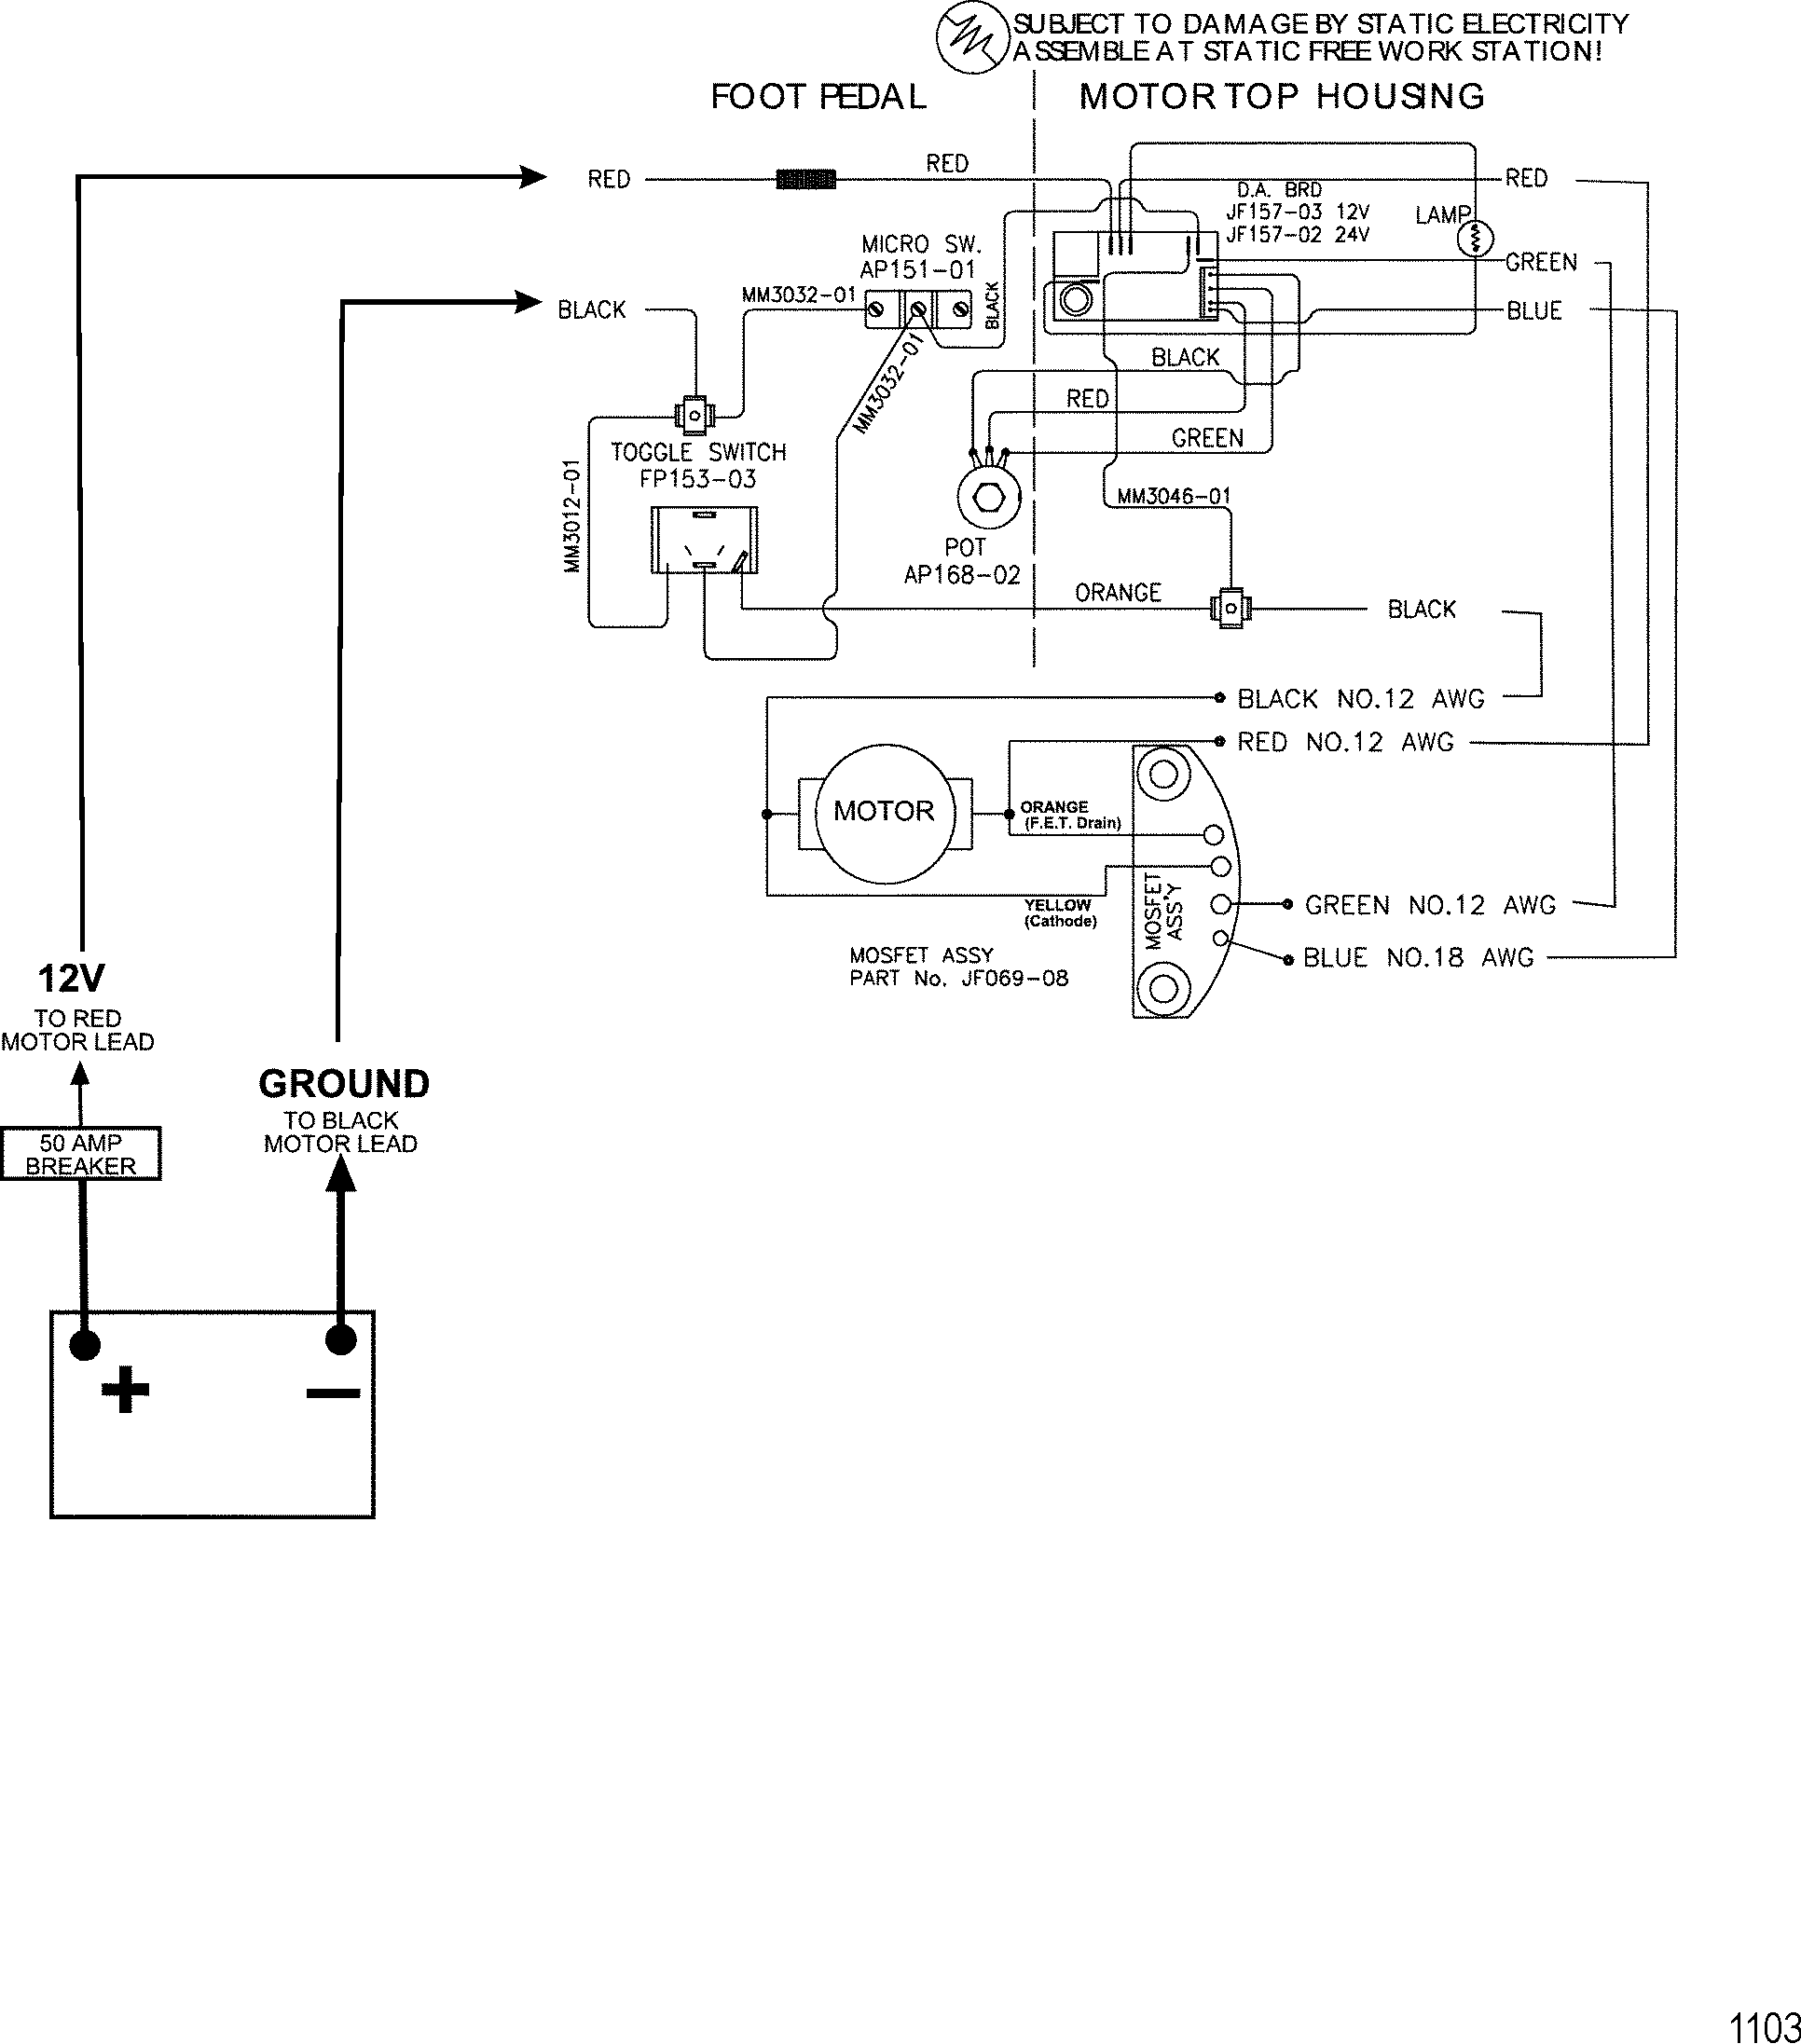 1103 diagrams 600338 motorguide trolling motor wiring diagram motorguide brute 750 wiring diagram at bayanpartner.co